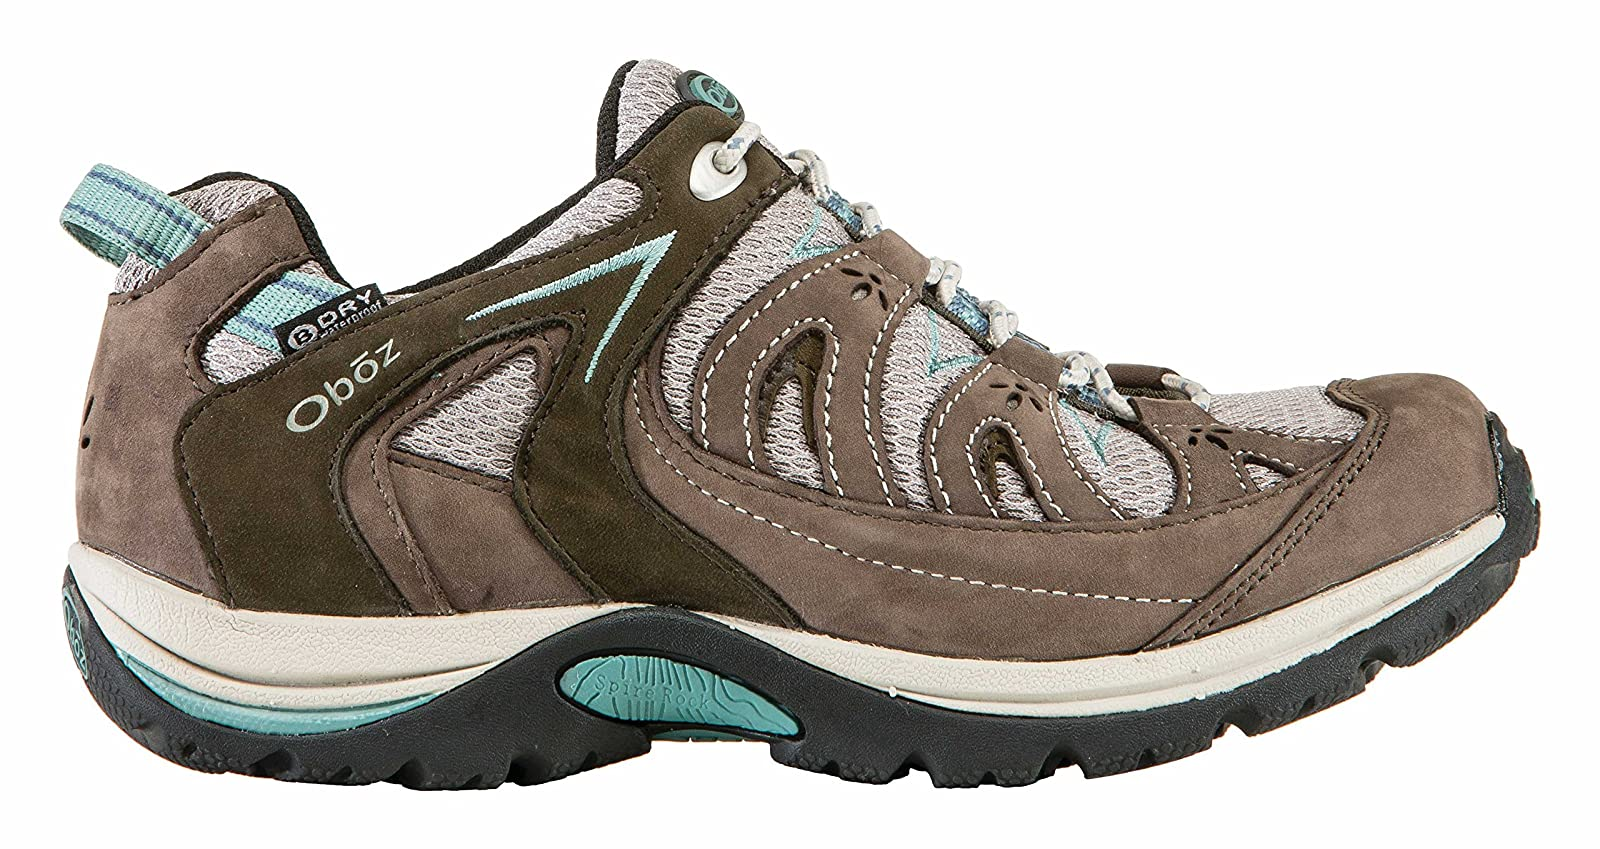 Oboz Women's Mystic Low Bdry Hiking Bluebell 6 M US - 2